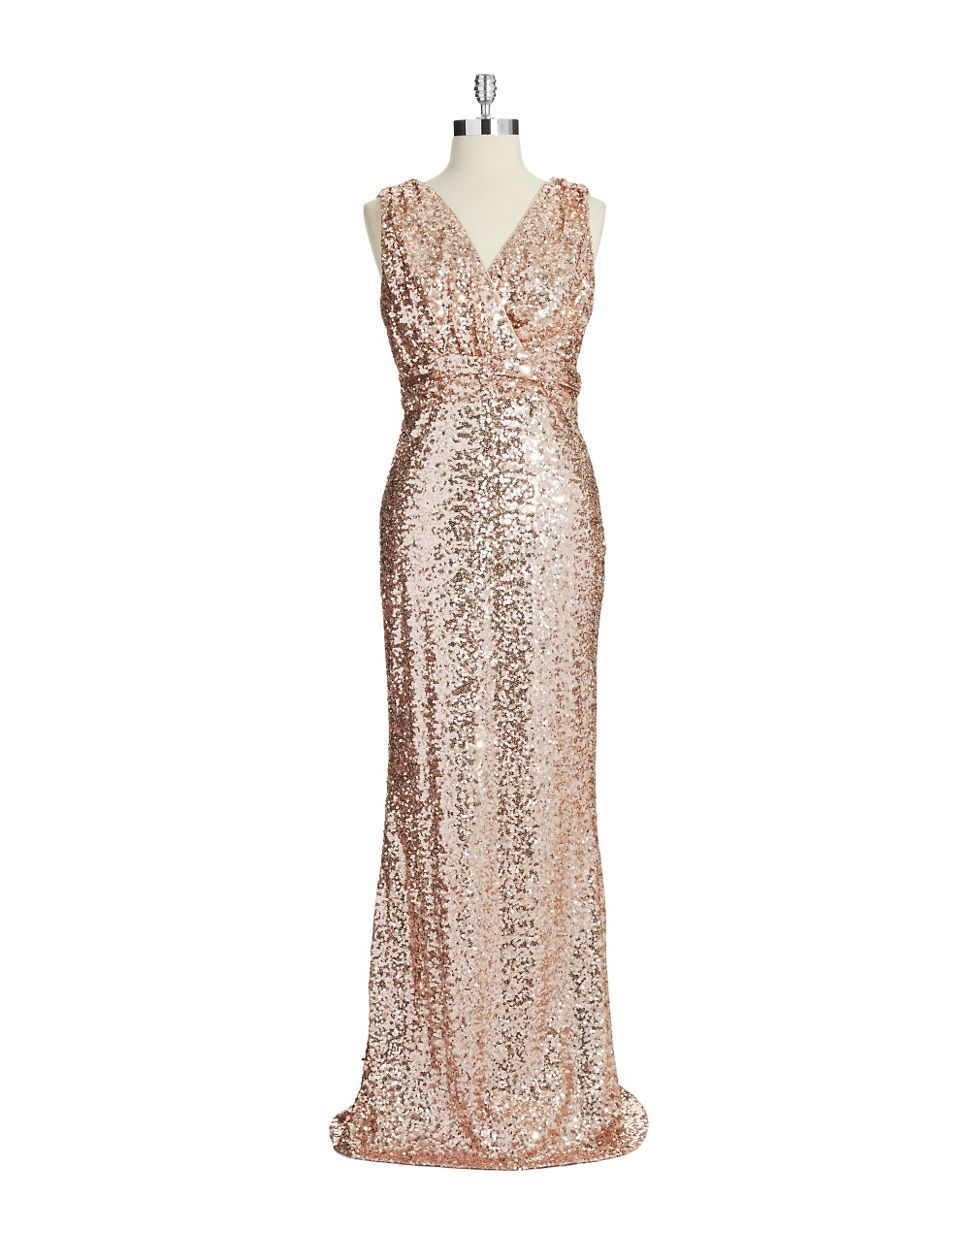 969dd0e8f40 Lord And Taylor Long Cocktail Dresses - Data Dynamic AG